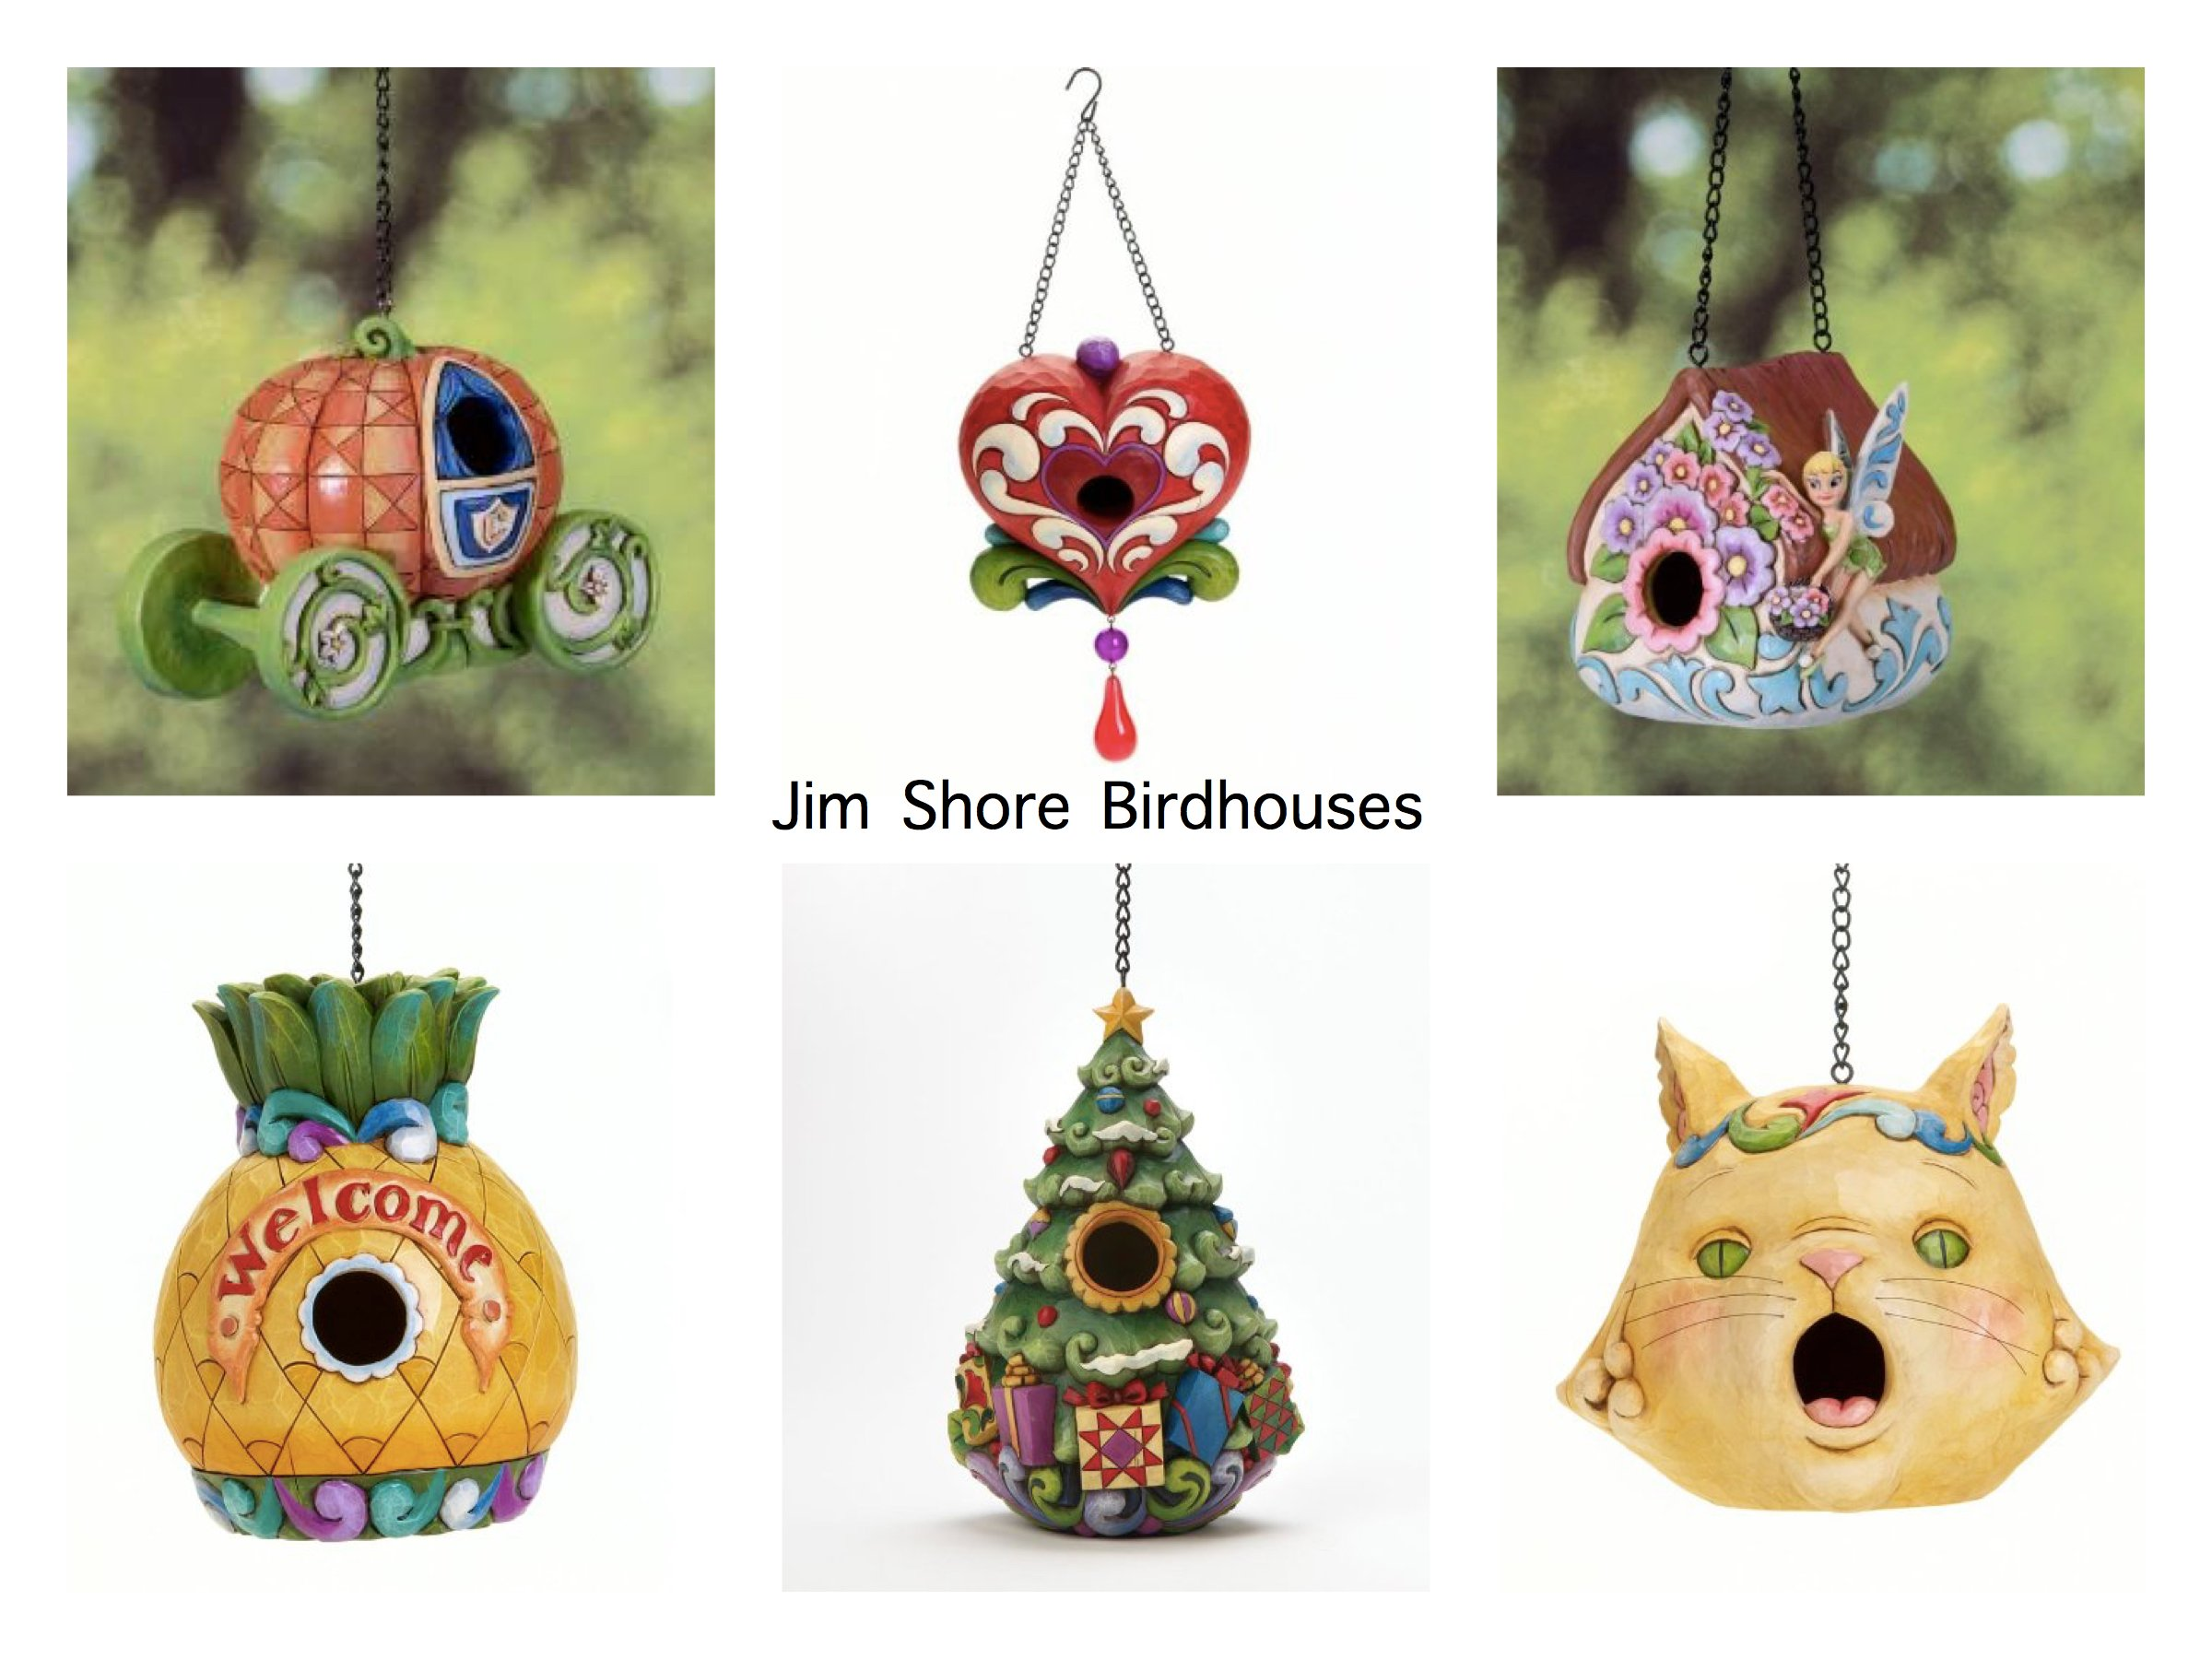 Jim Shore Birdhouses